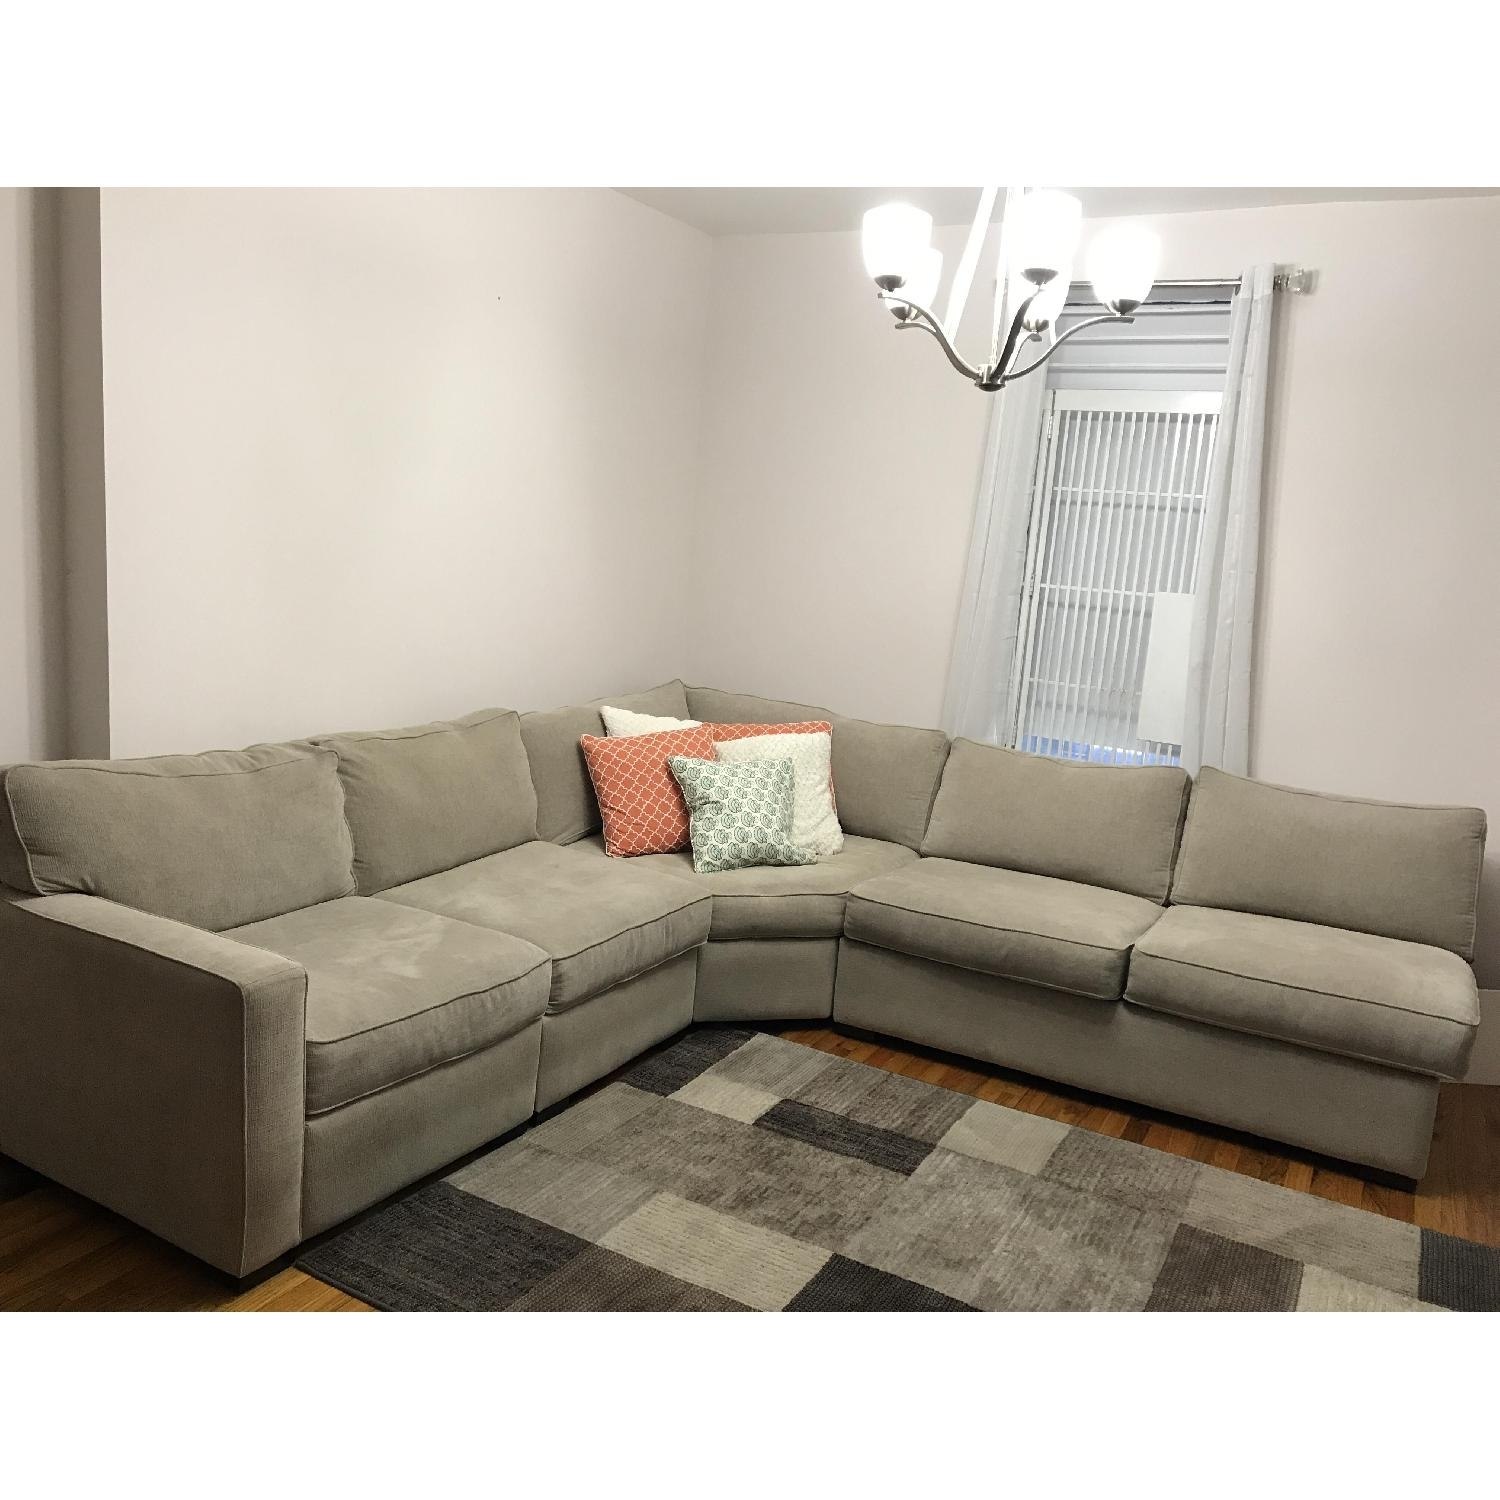 Magnolia Home Joanna Gaines Homestead Threece Sectional Sofa Destin With Regard To Magnolia Home Homestead 3 Piece Sectionals By Joanna Gaines (Image 19 of 25)